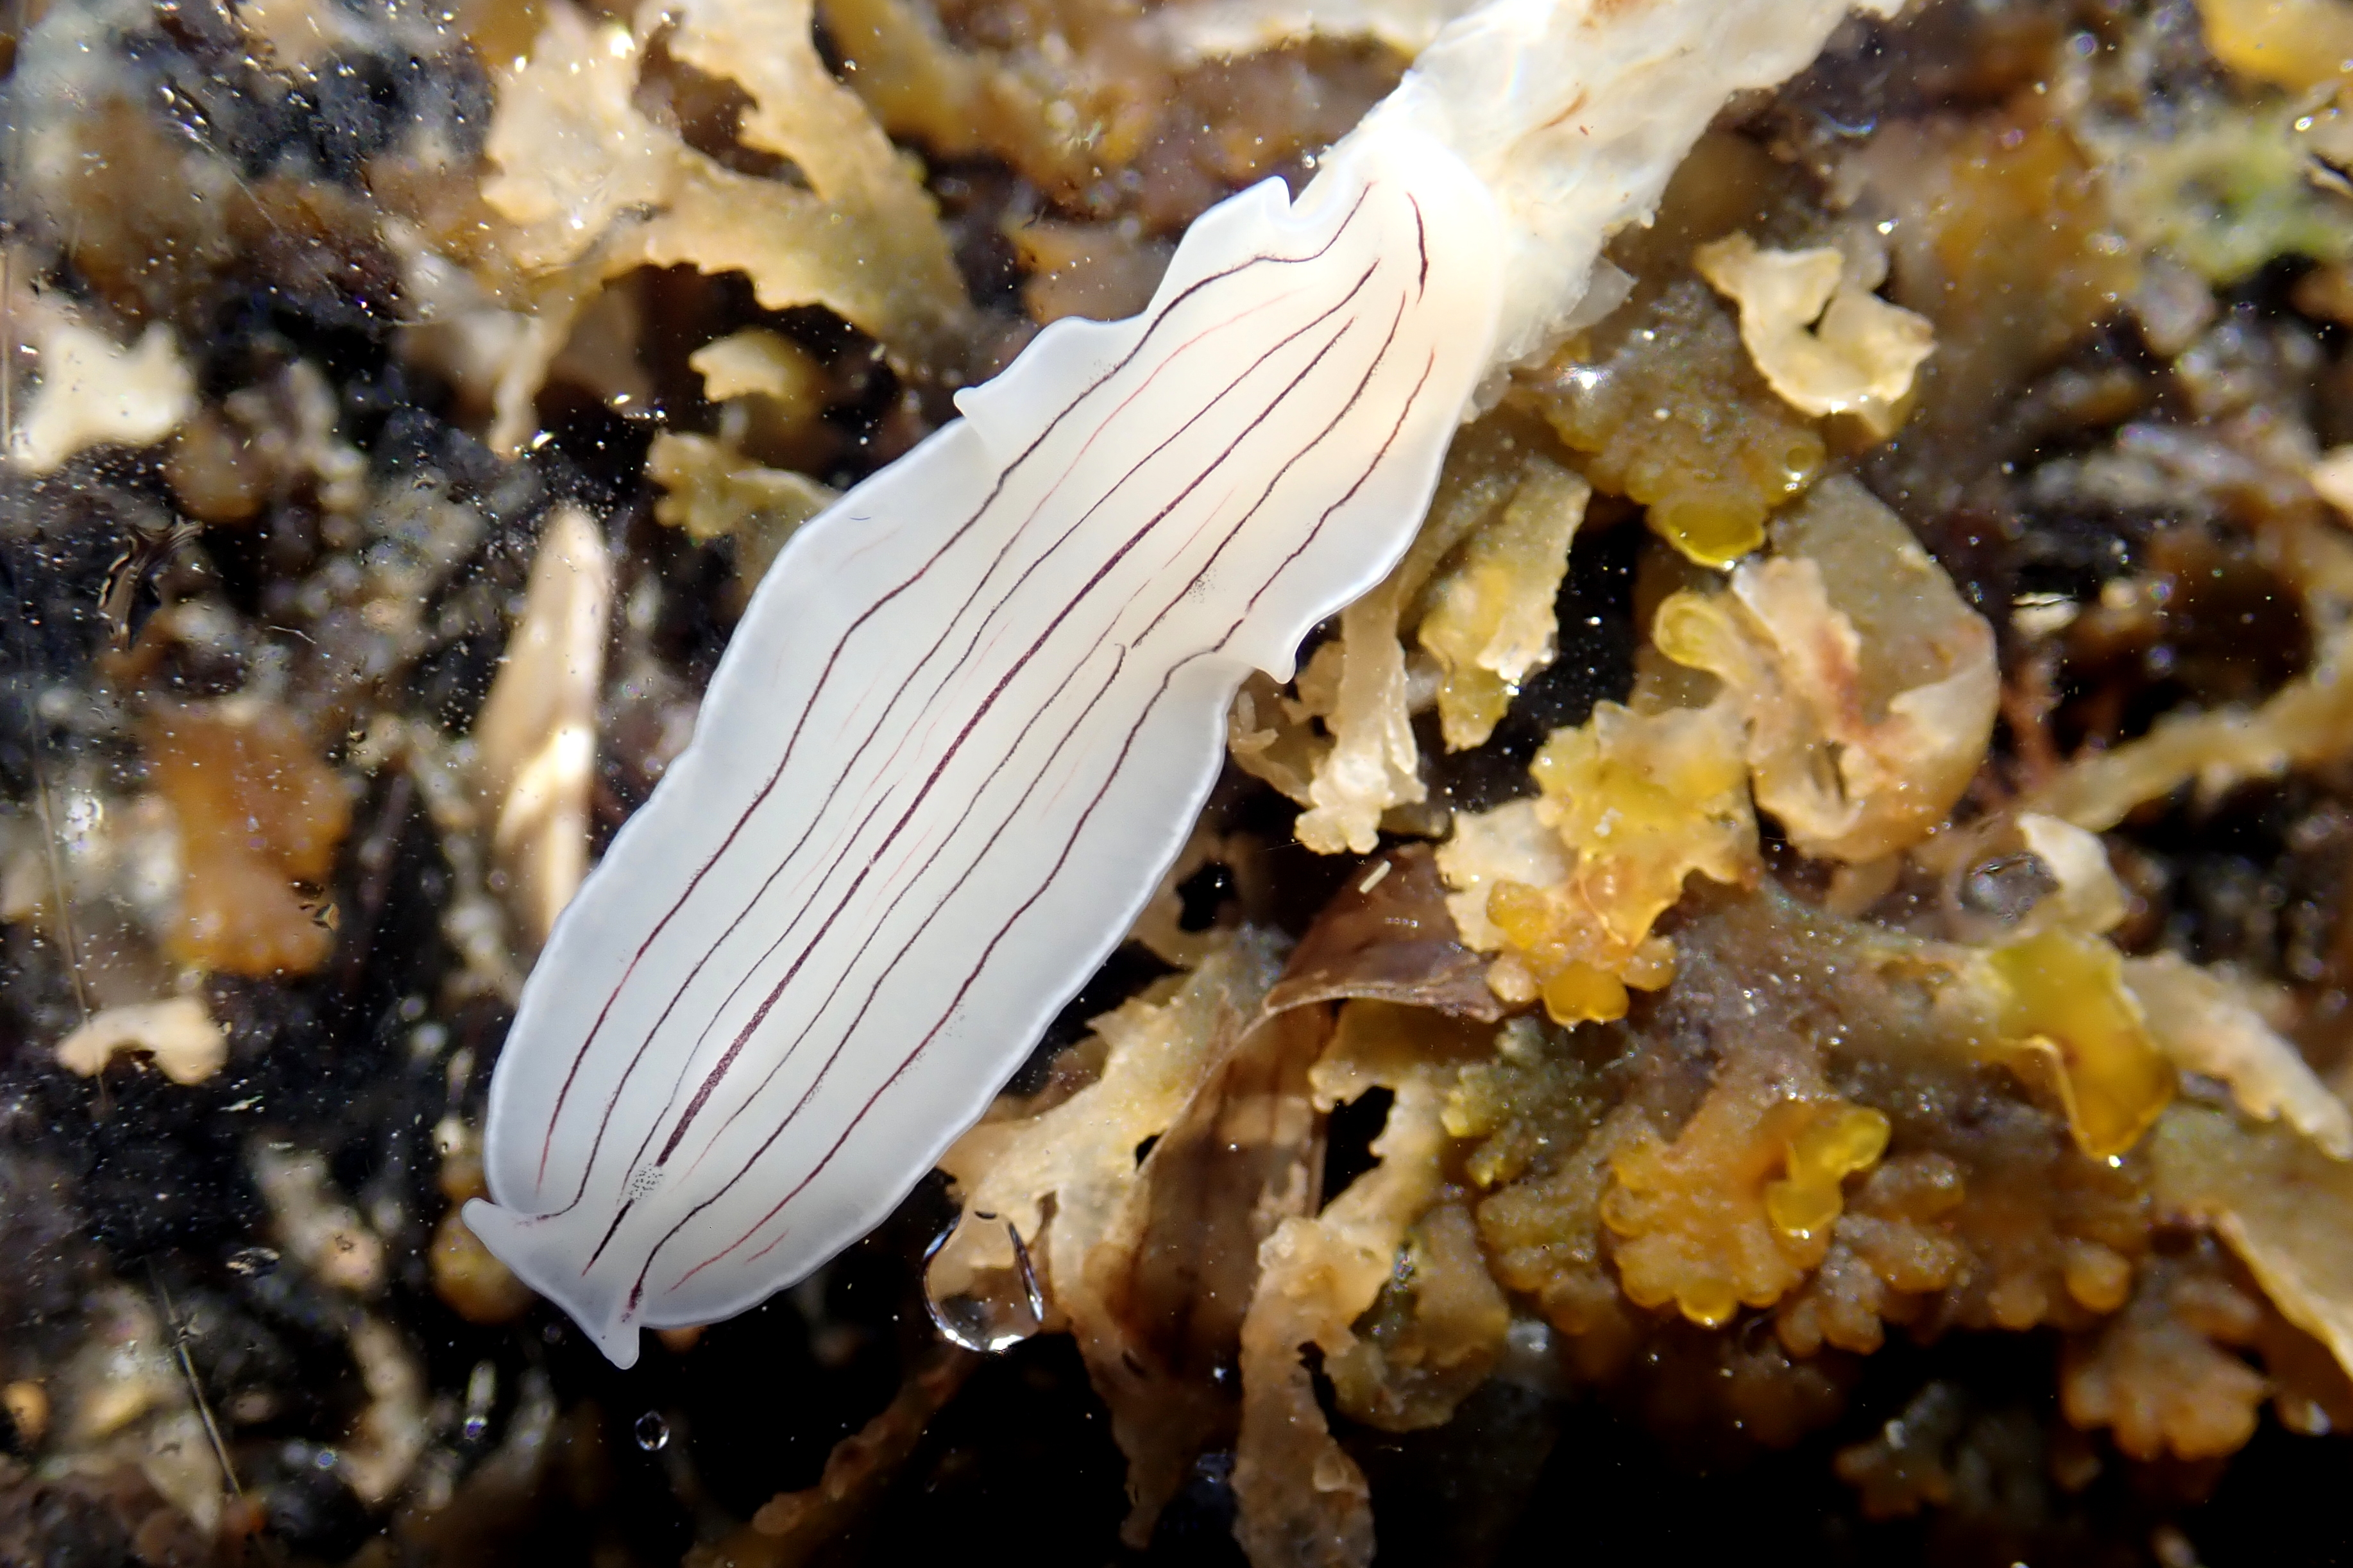 Candy-striped flatworm at Gyllingvase, Falmouth